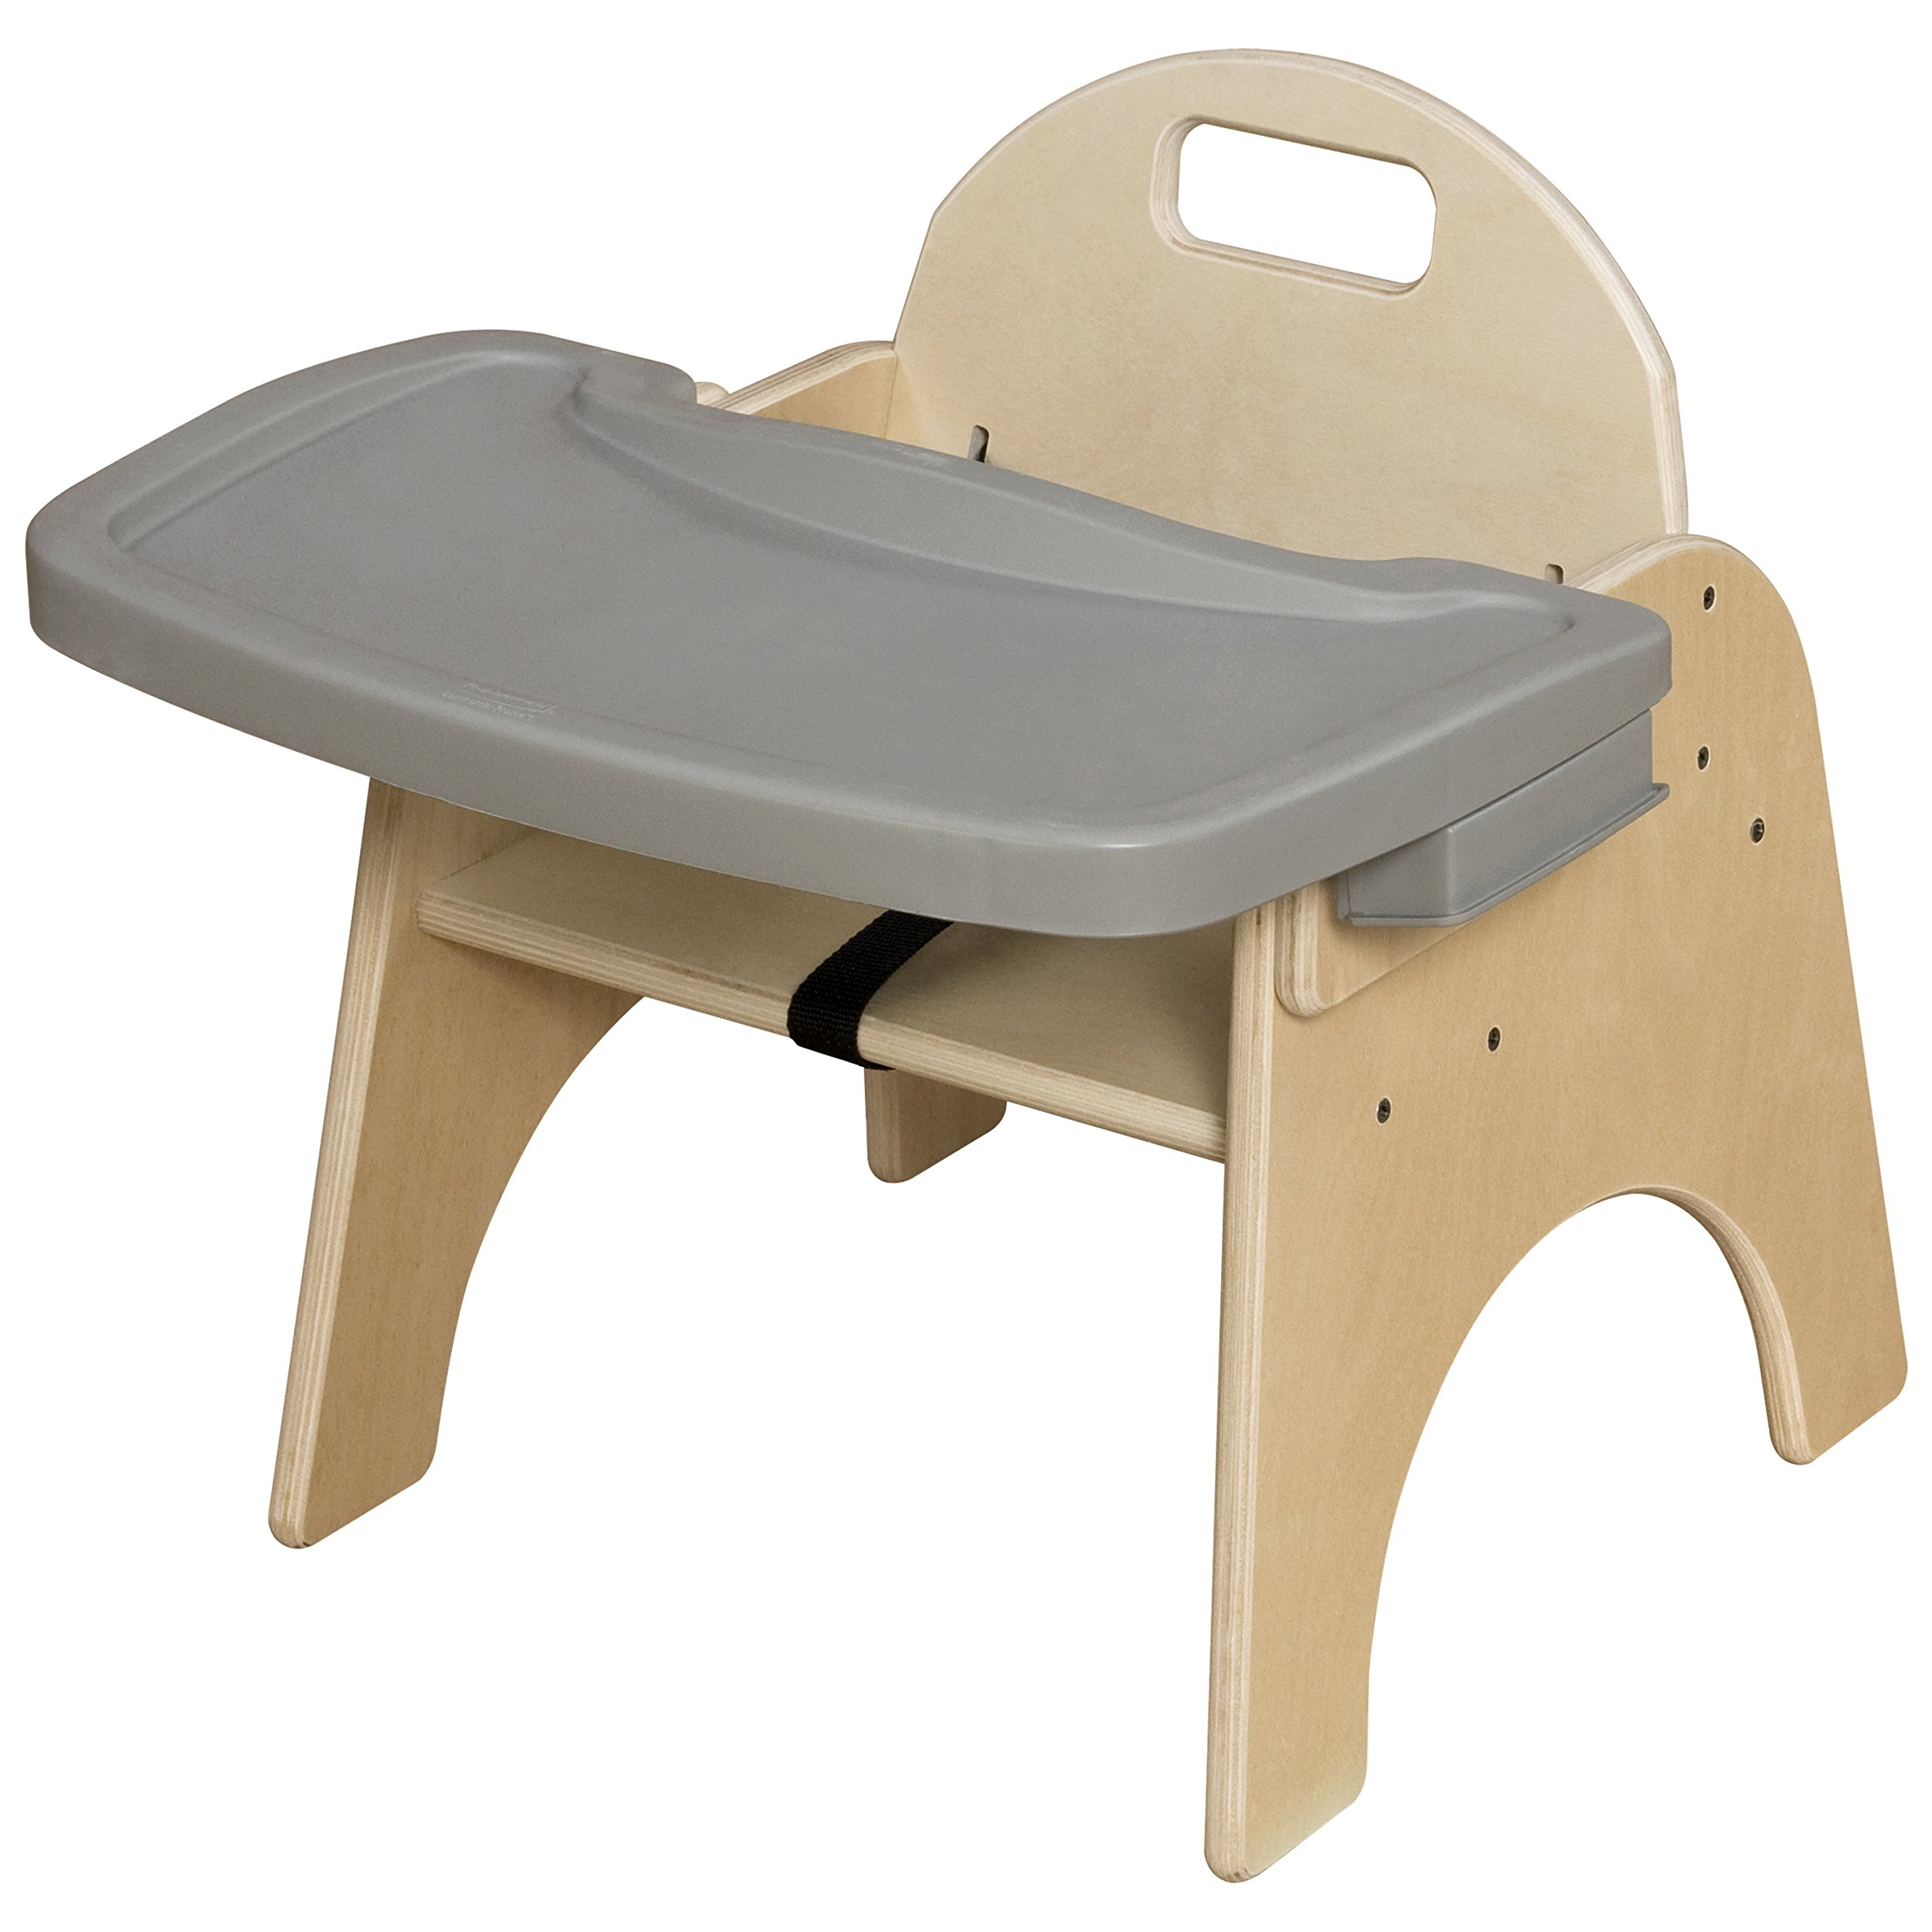 Wood Designs Stackable Woodie Toddler Chair with Adjustable Tray, 9'' High Seat